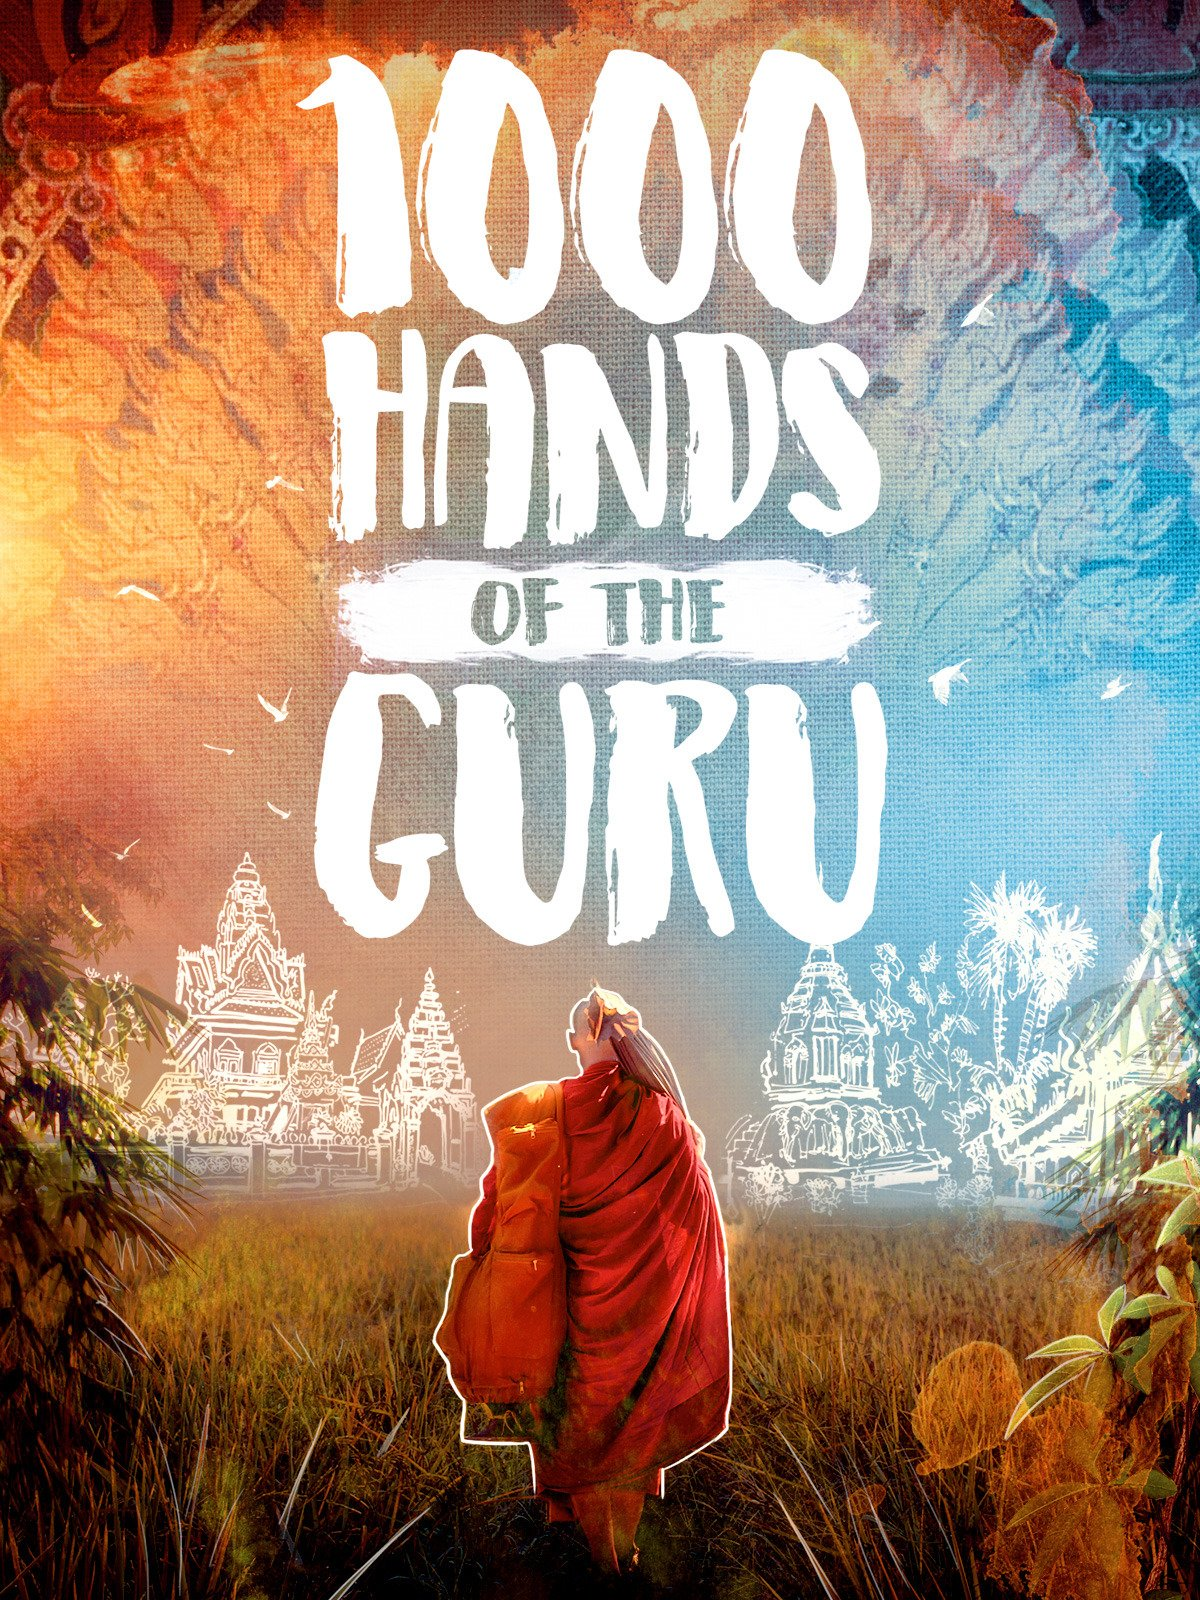 1000 Hands of Thr Guru